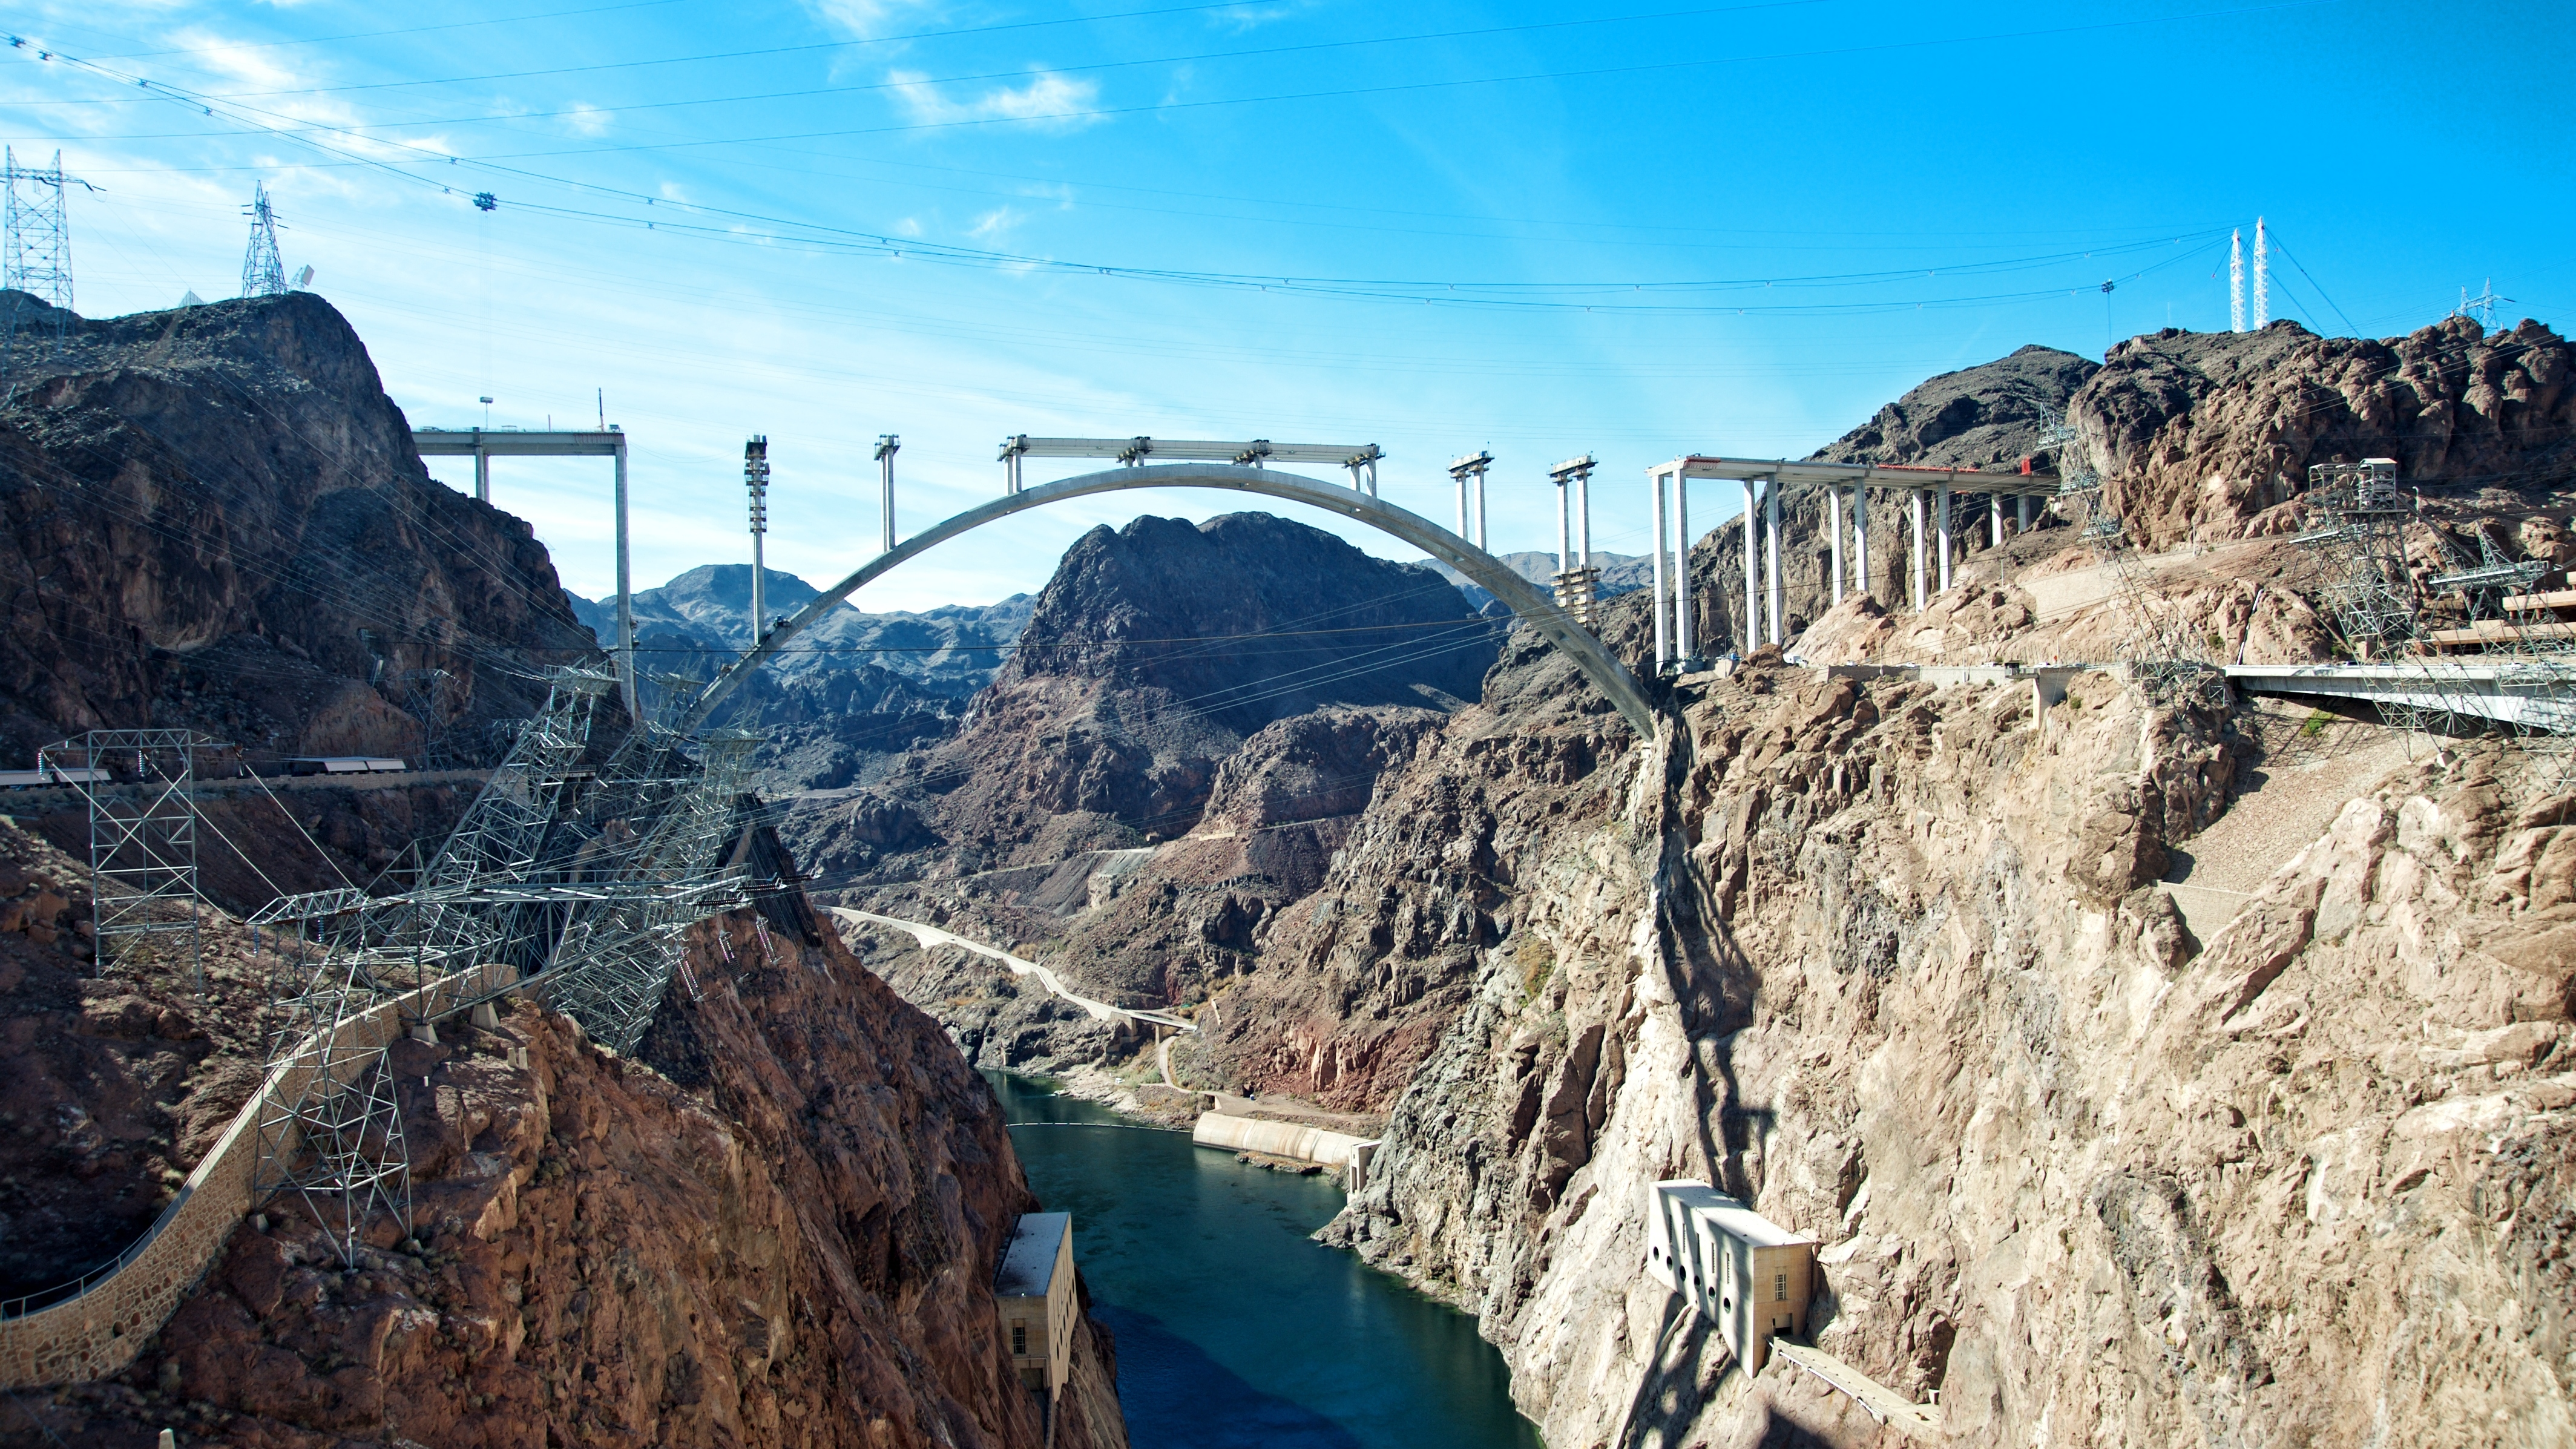 Hoover Dam and the Hoover Dam Bypass Bridge during construction